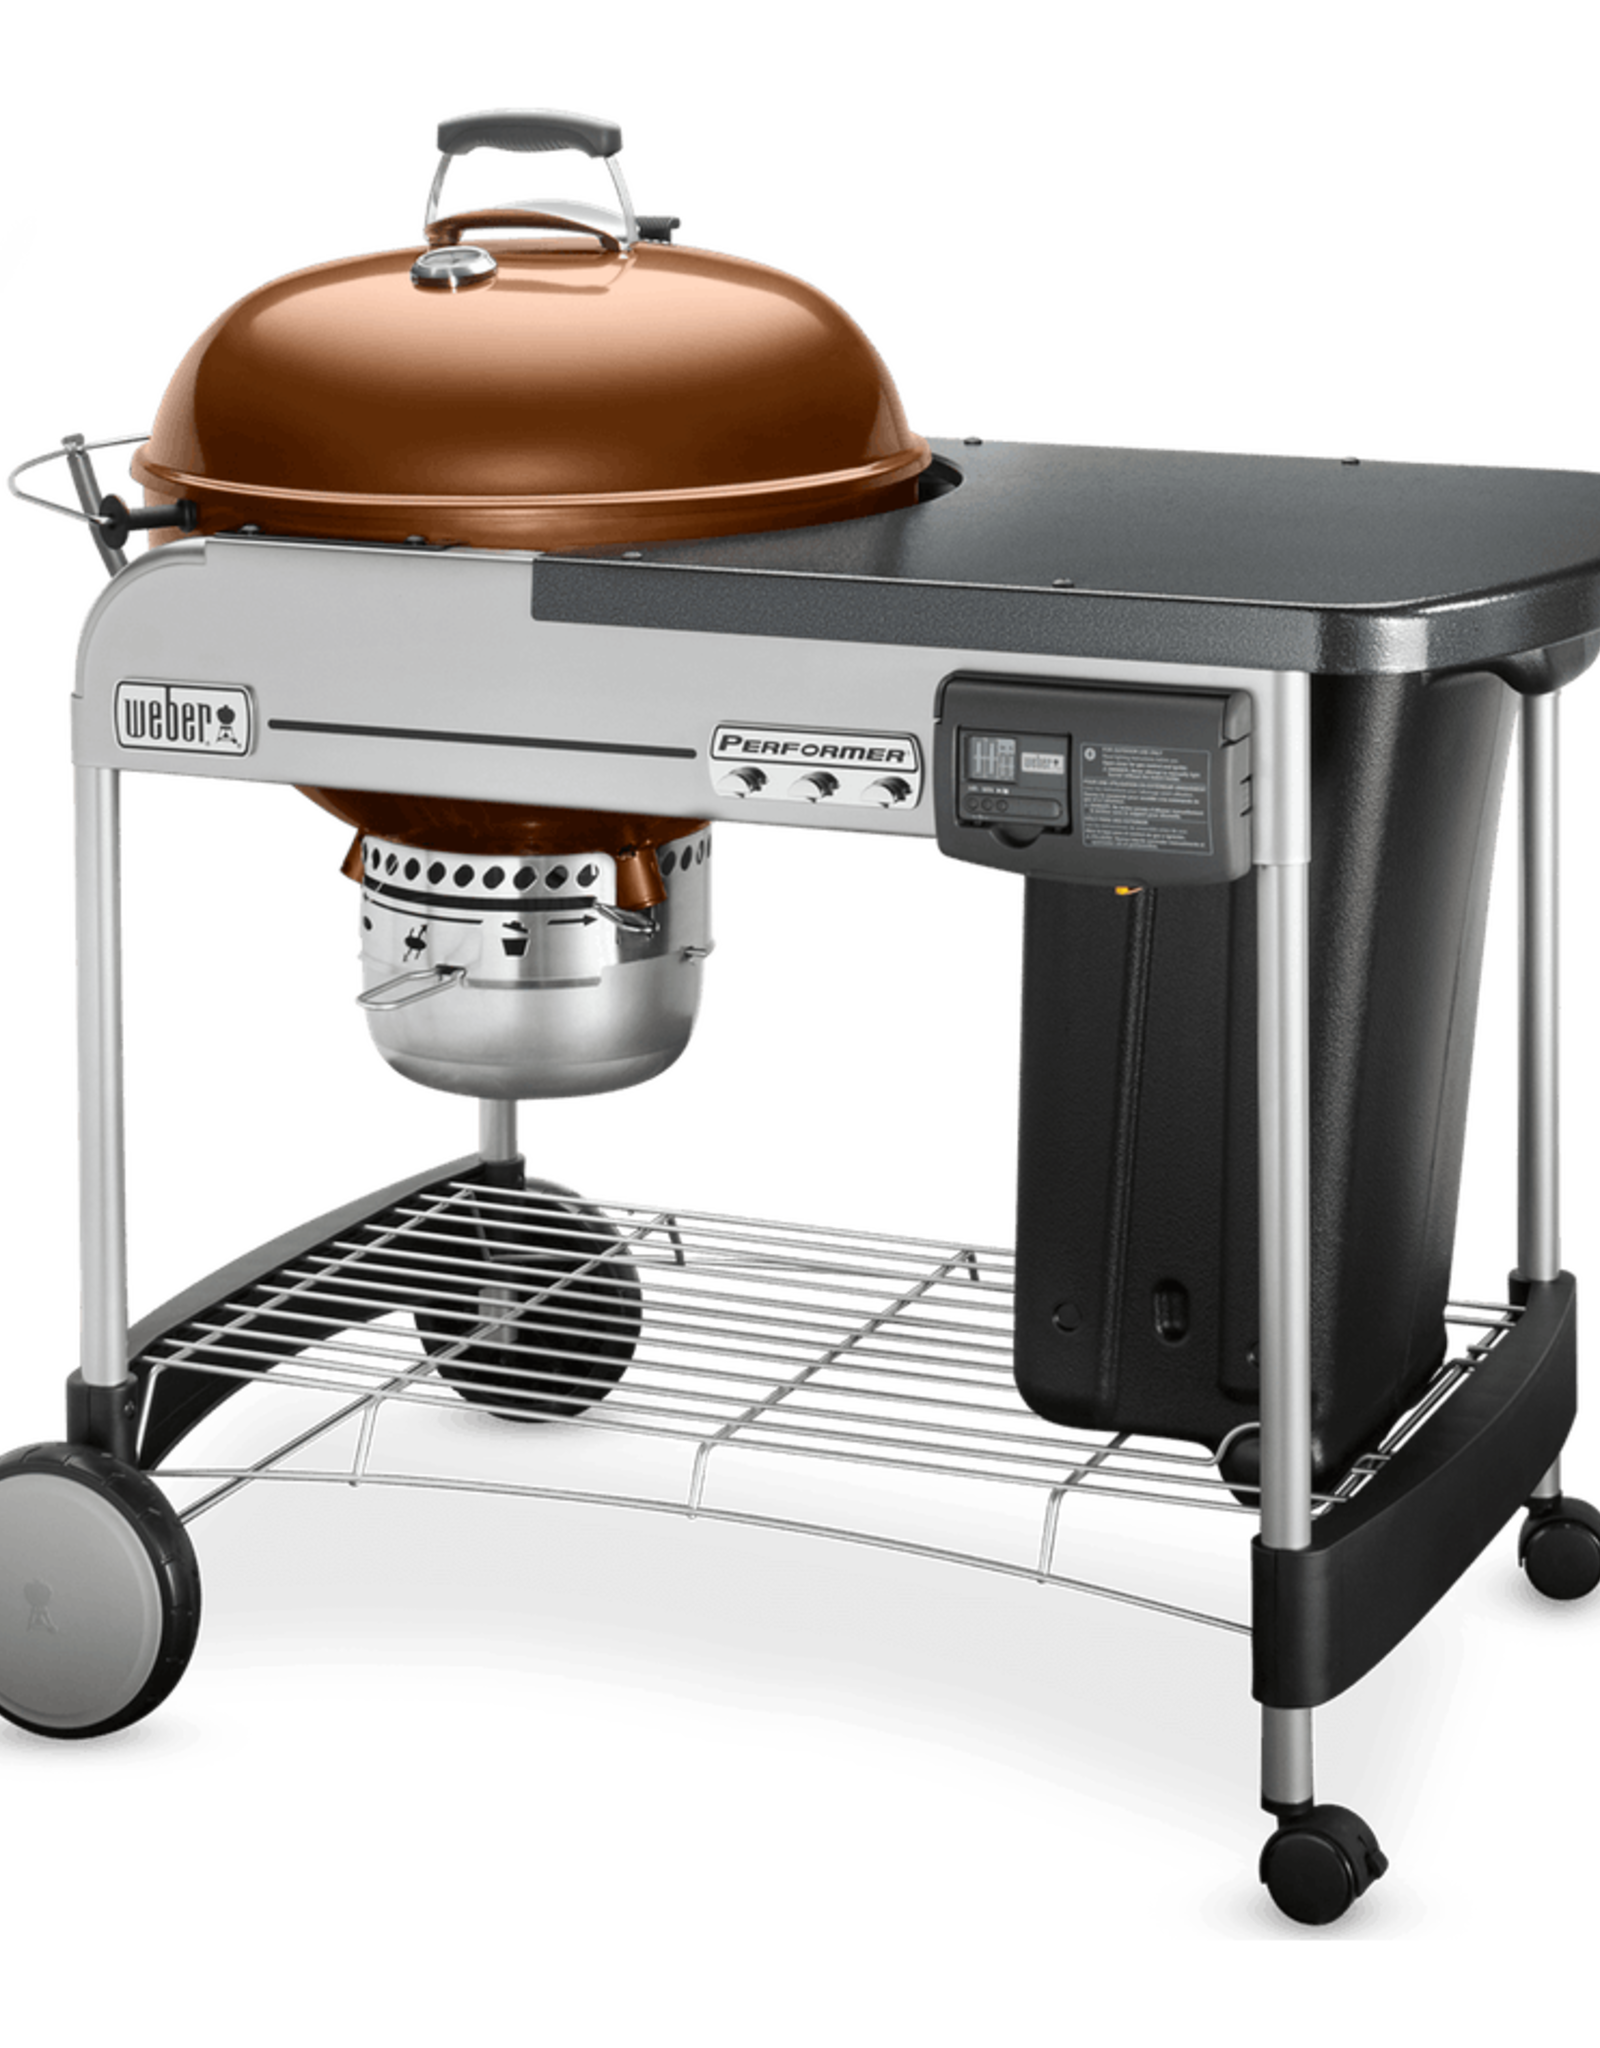 "Weber Performer® Deluxe 22"" Charcoal Grill, Copper"